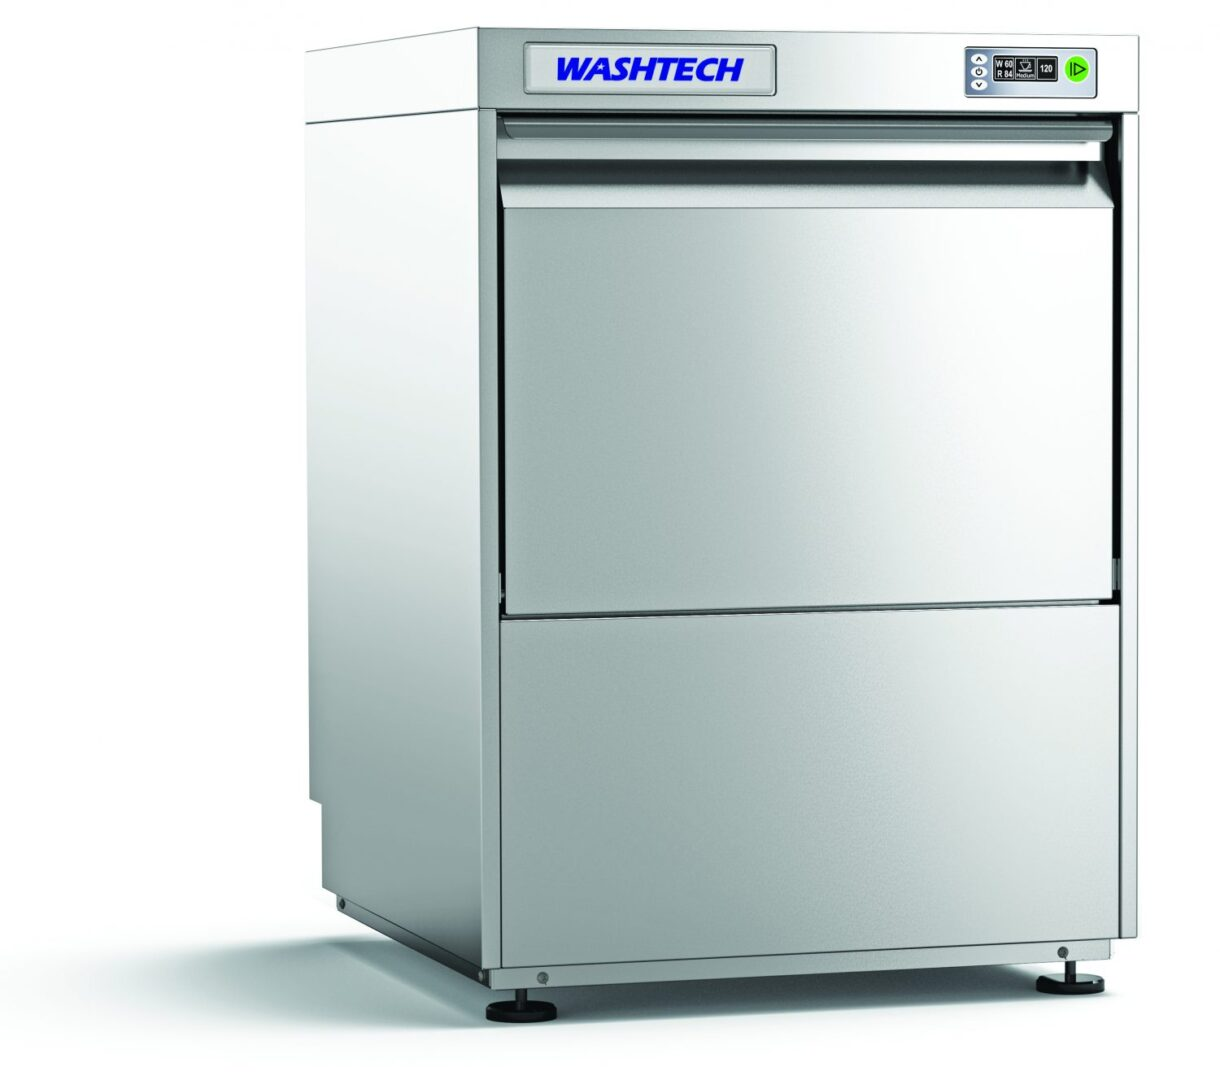 Washtech UL – Premium Fully Insulated Undercounter Glasswasher / Dishwasher – 500mm Rack